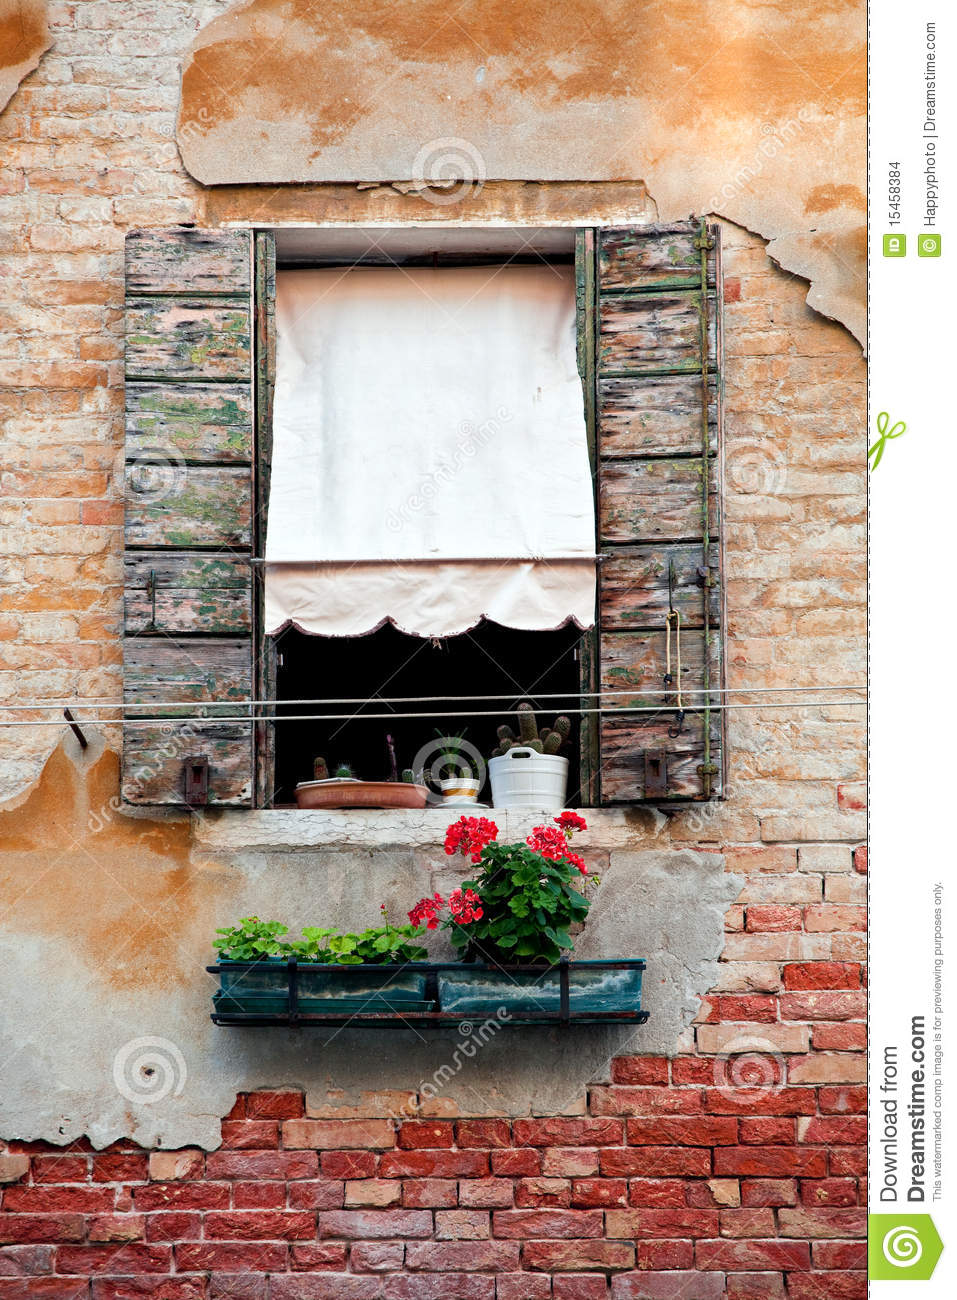 Rustic Window With Shutters In Old Venice House Stock Photo  Image 15458384